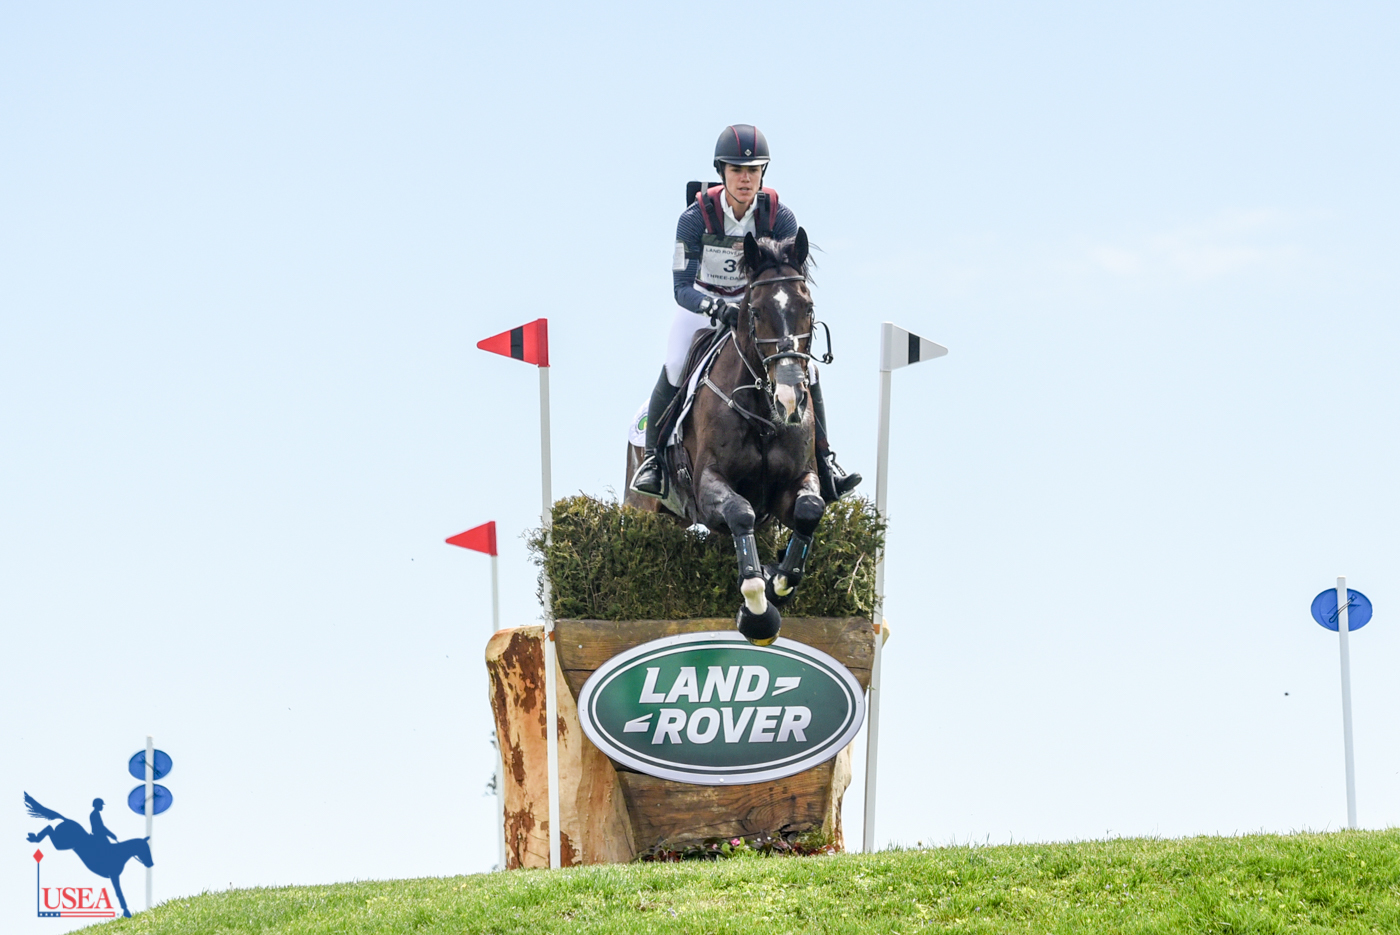 11 Riders to Fly the U S  Flag at the 2019 Burghley Horse Trials